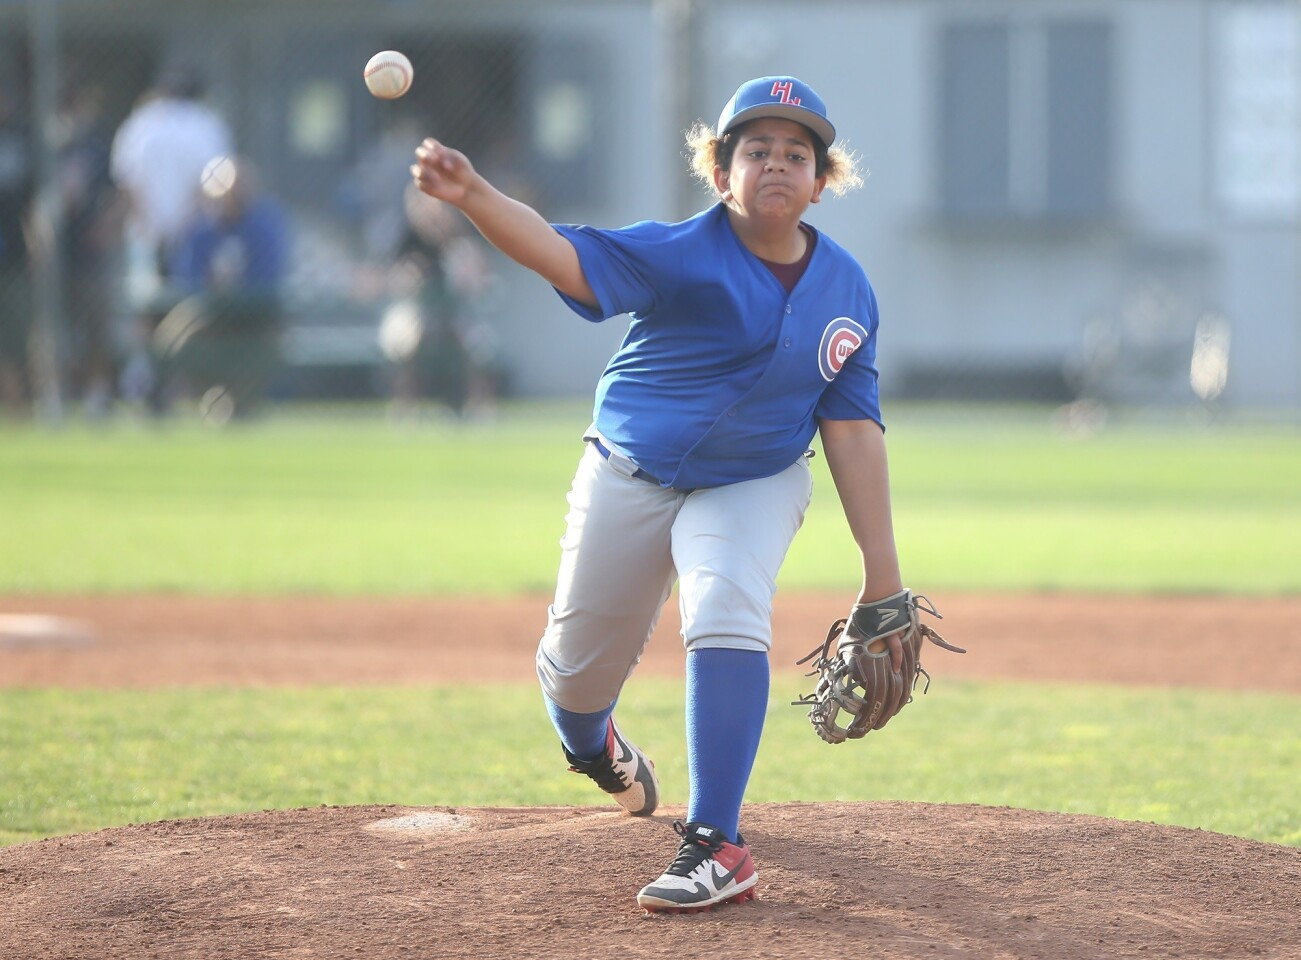 Photo Gallery: Costa Mesa National Little League No. 1 vs. Huntington West Little League No. 1 in the District 62 Tournament of Champions